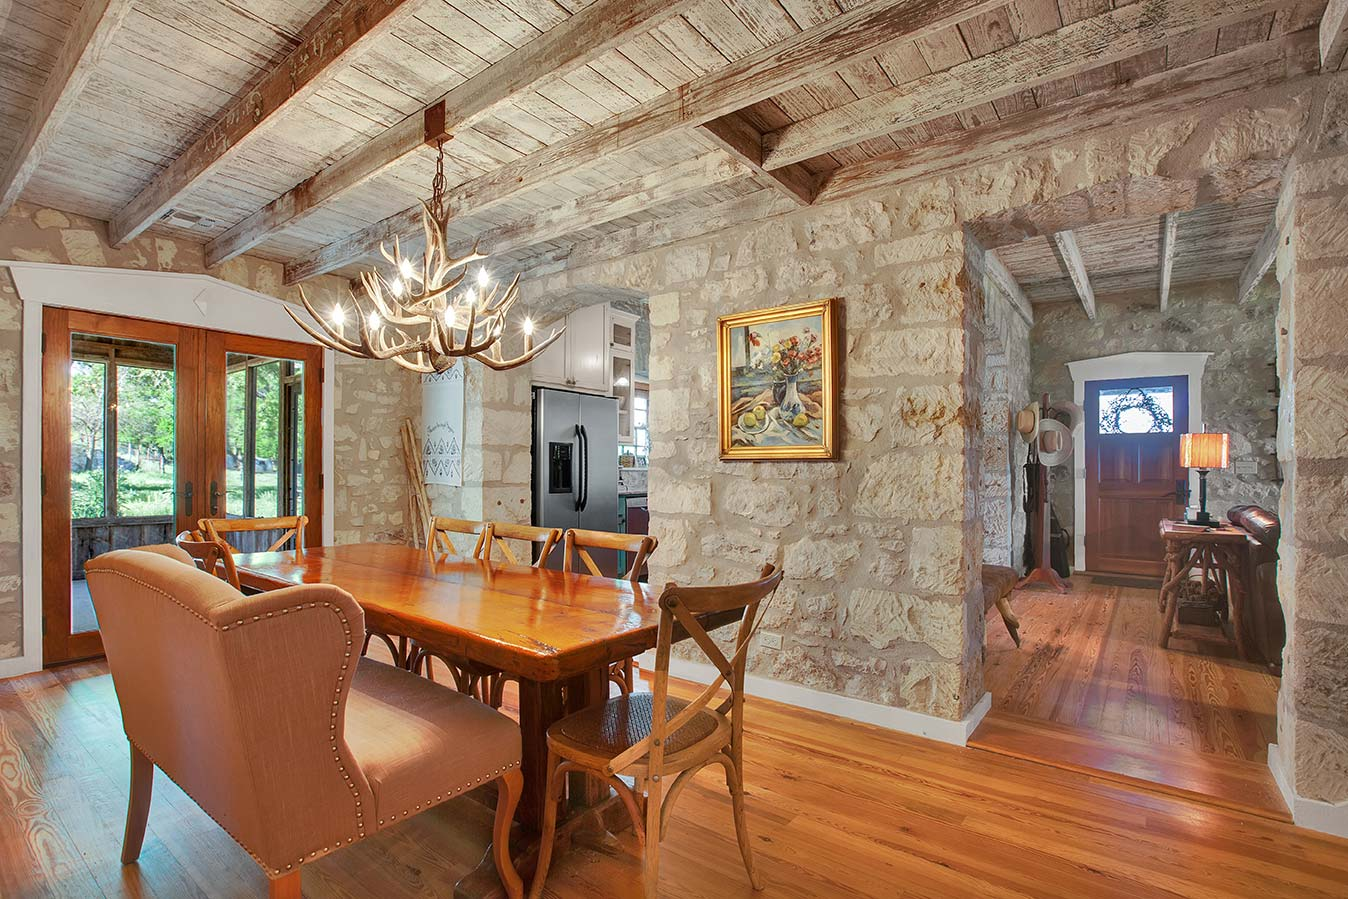 fredericksburg-realty-squaw-creek-ranch-real-estate-land-for-sale-home-house-historic-4.jpg